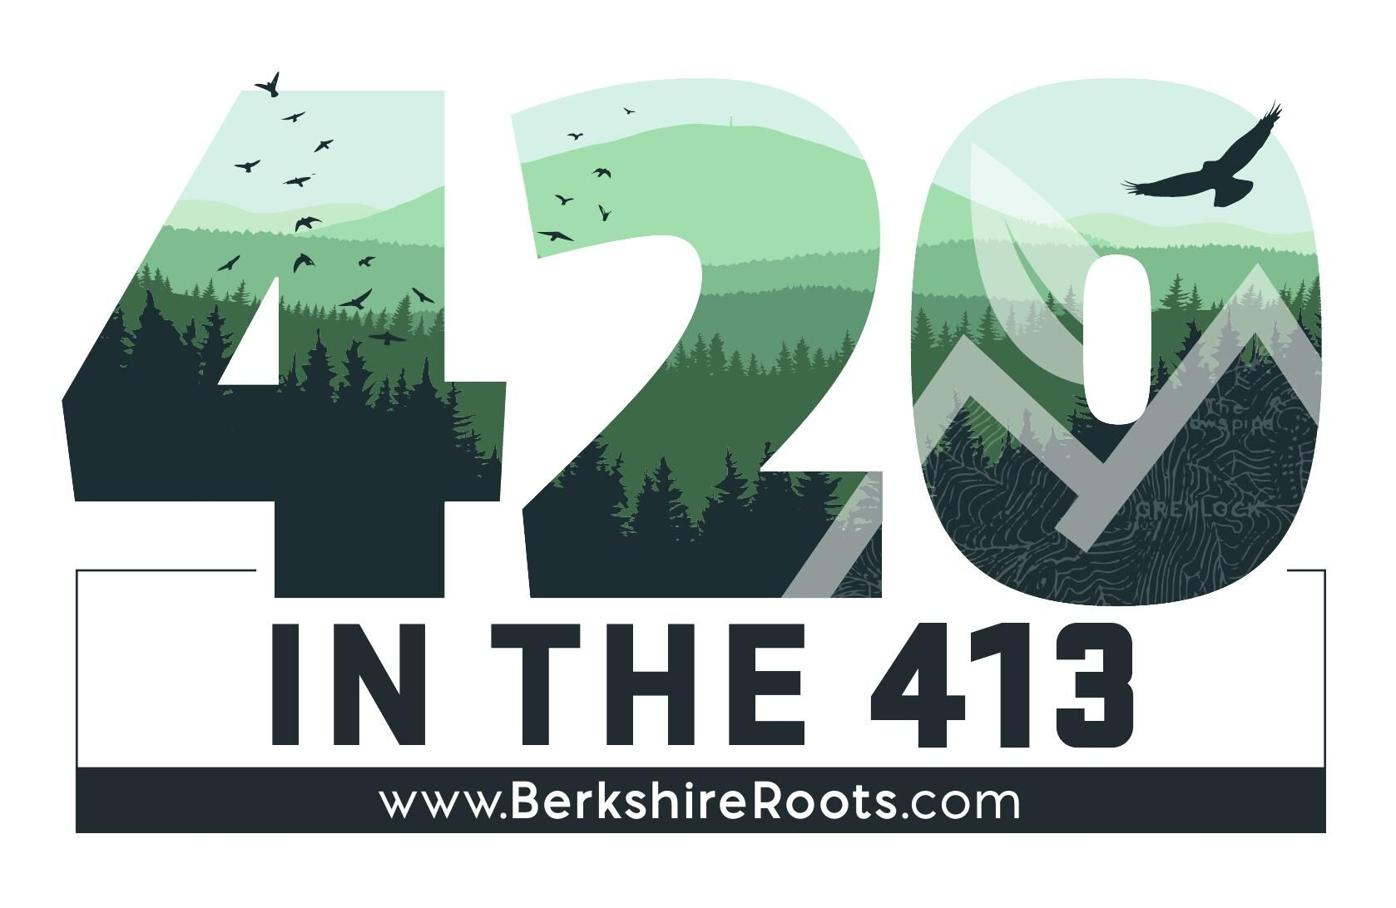 420 in the 413 with URL.pdf